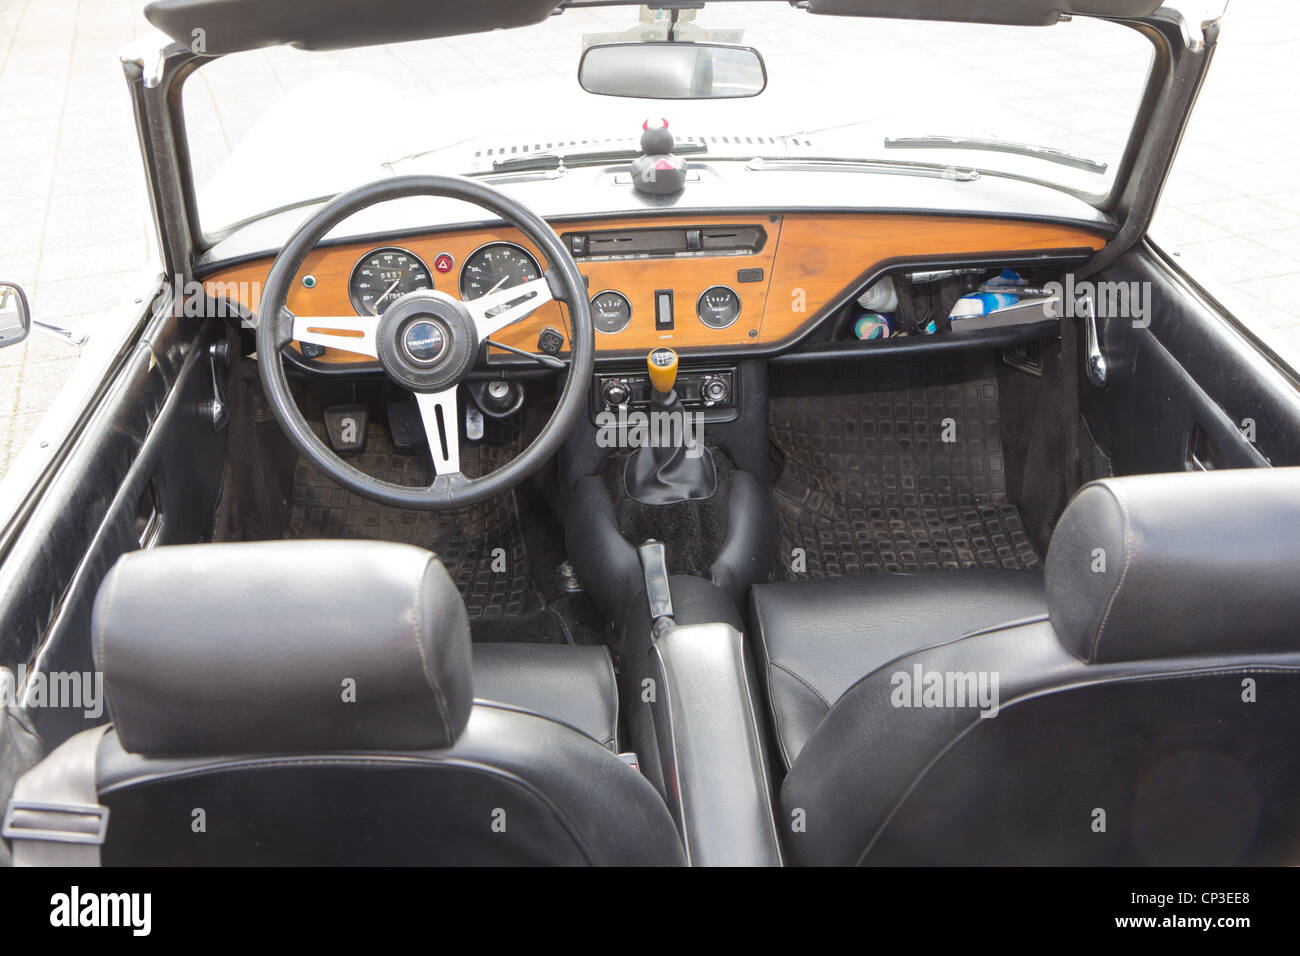 Vintage race car TRIUMPH Spitfire MK I interior from 1964 Stock ...